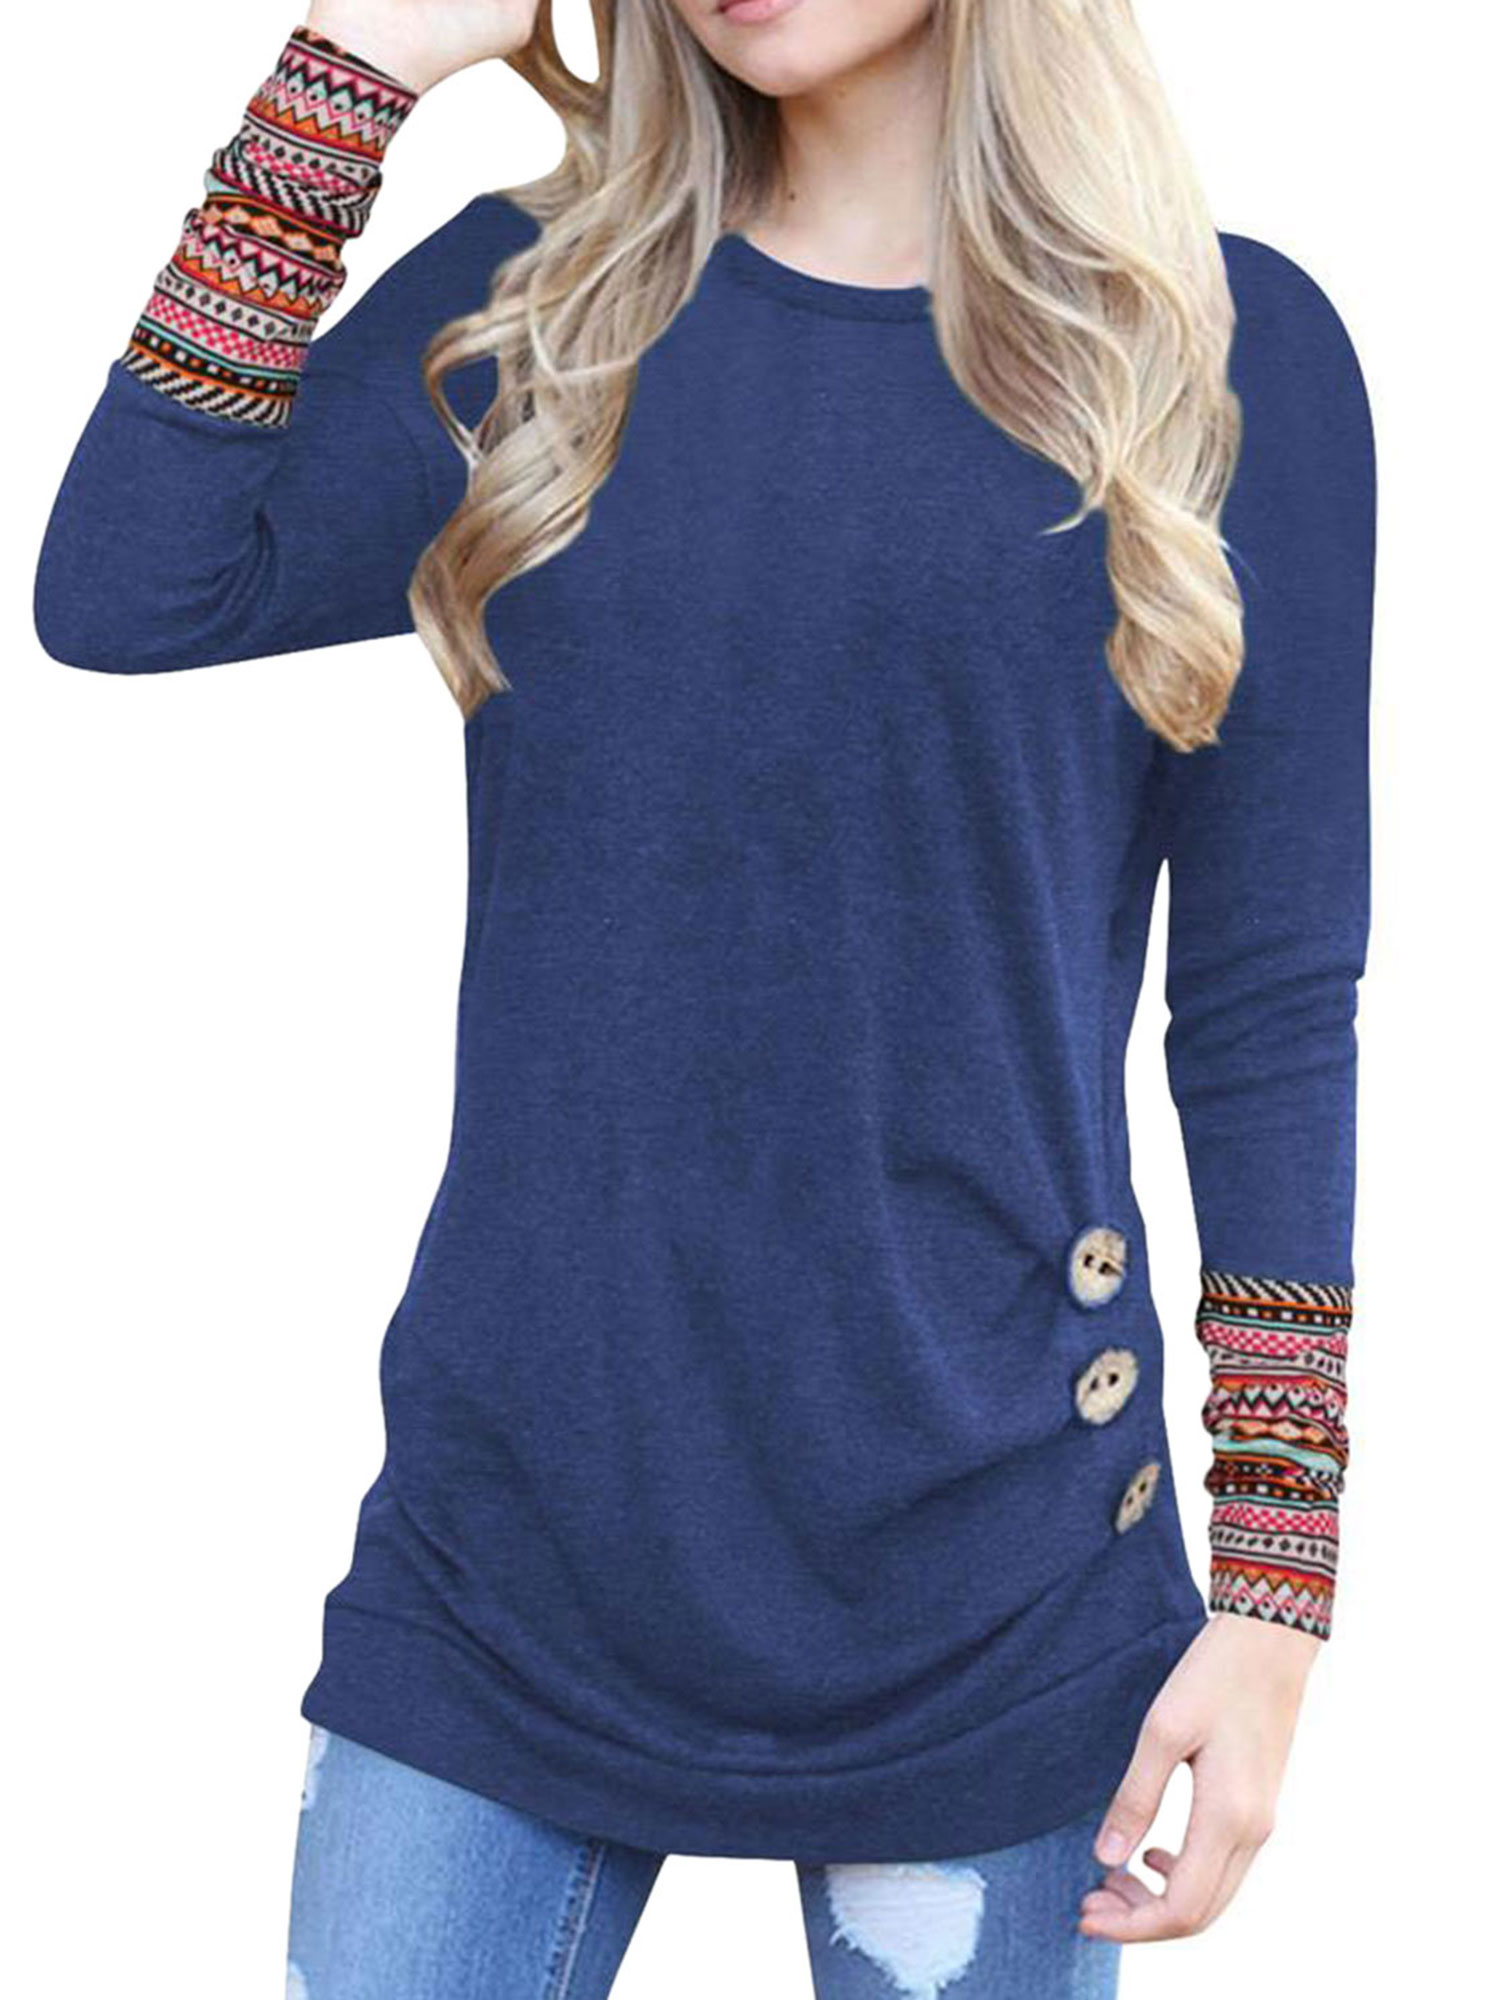 Nlife Women Boho Print Cuff Sleeve Side Button T-Shirt